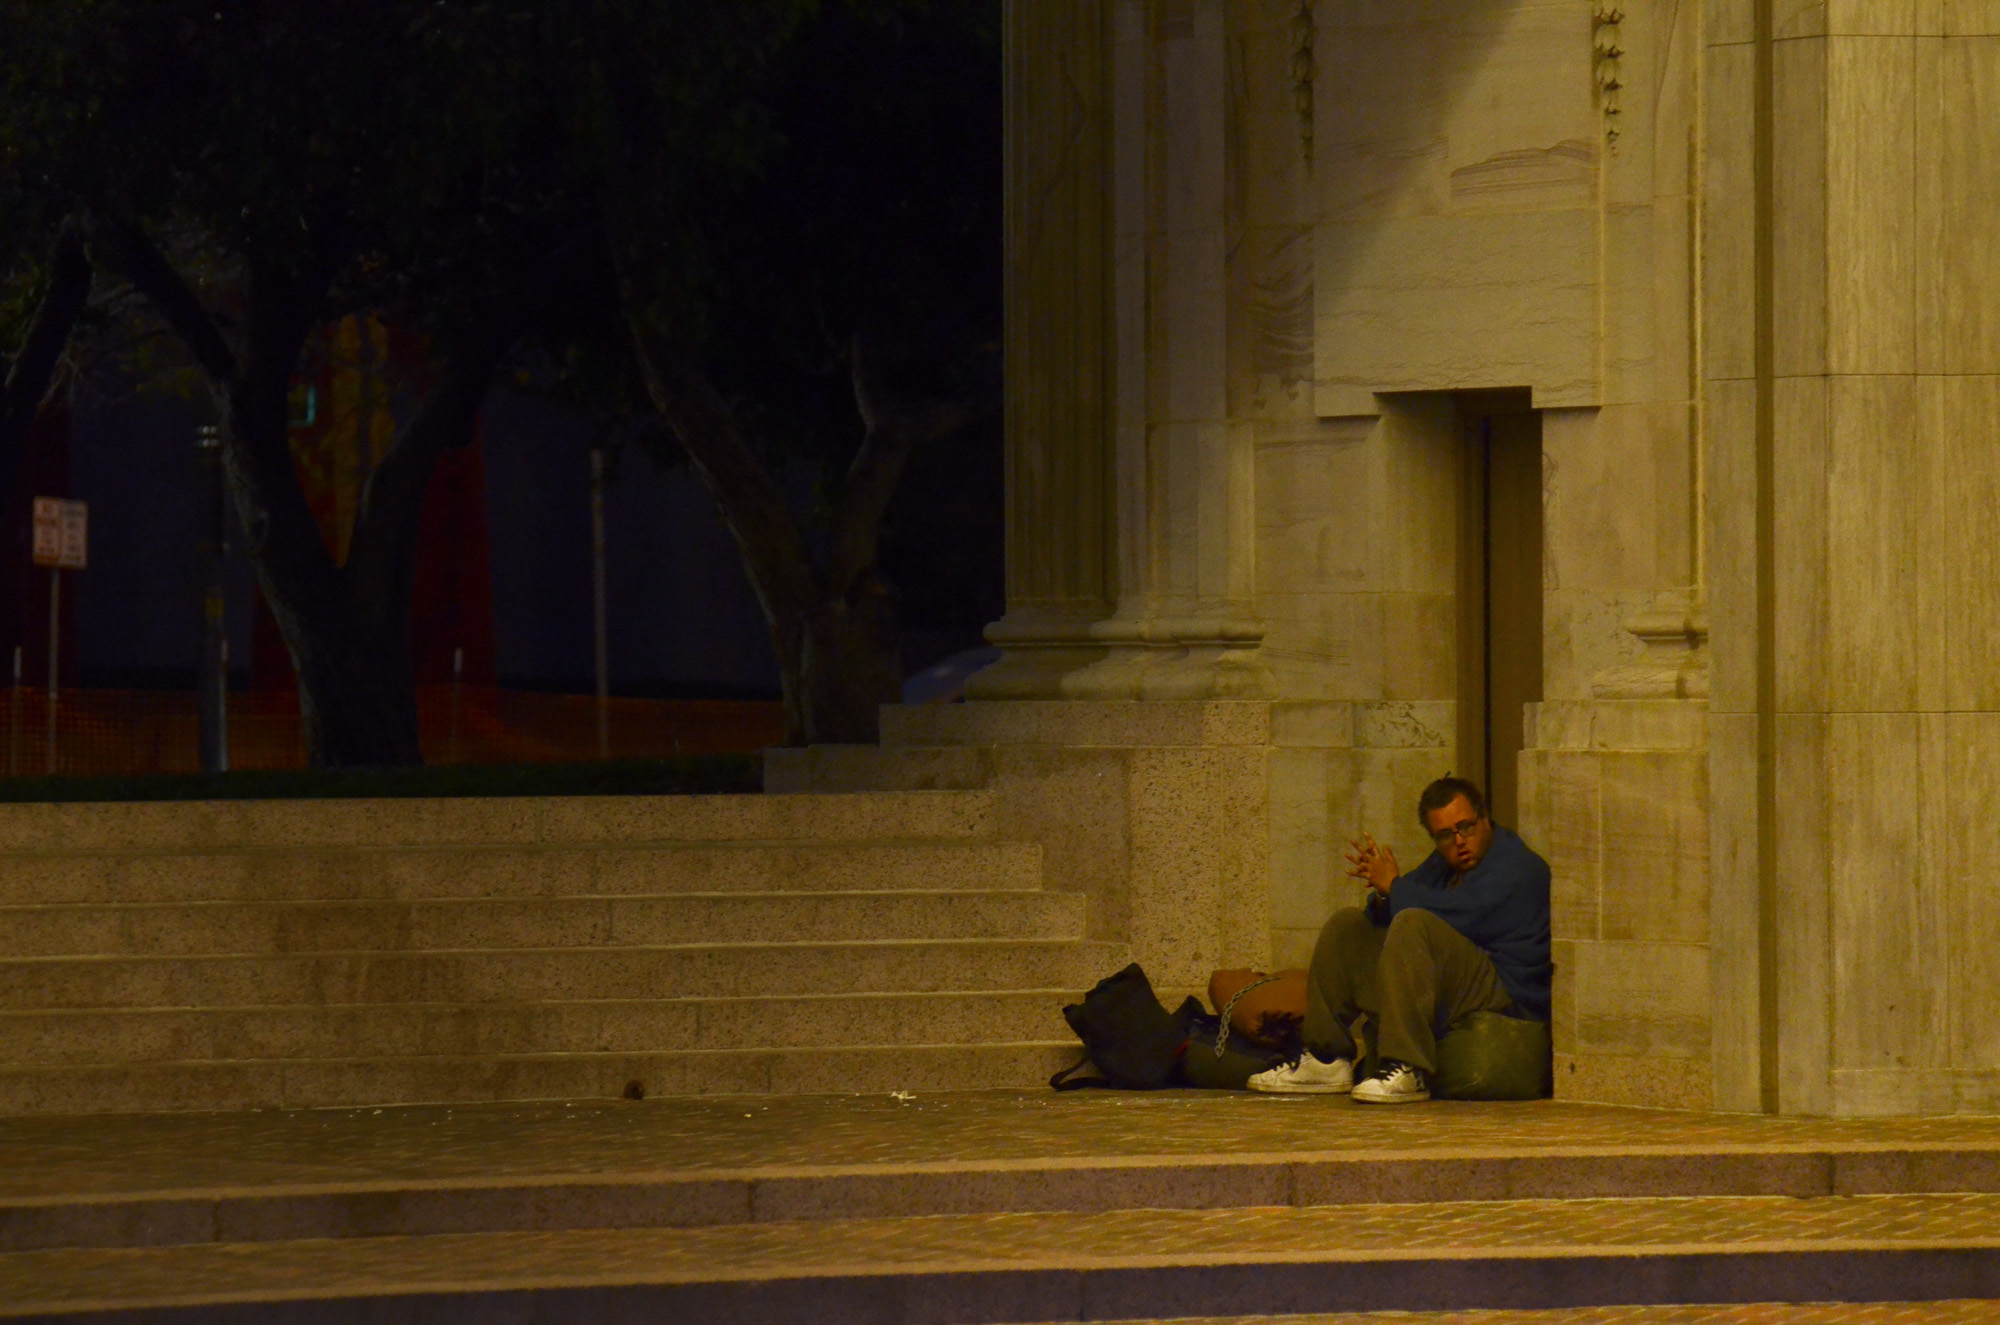 Photo: Homeless man in Civic Center Park